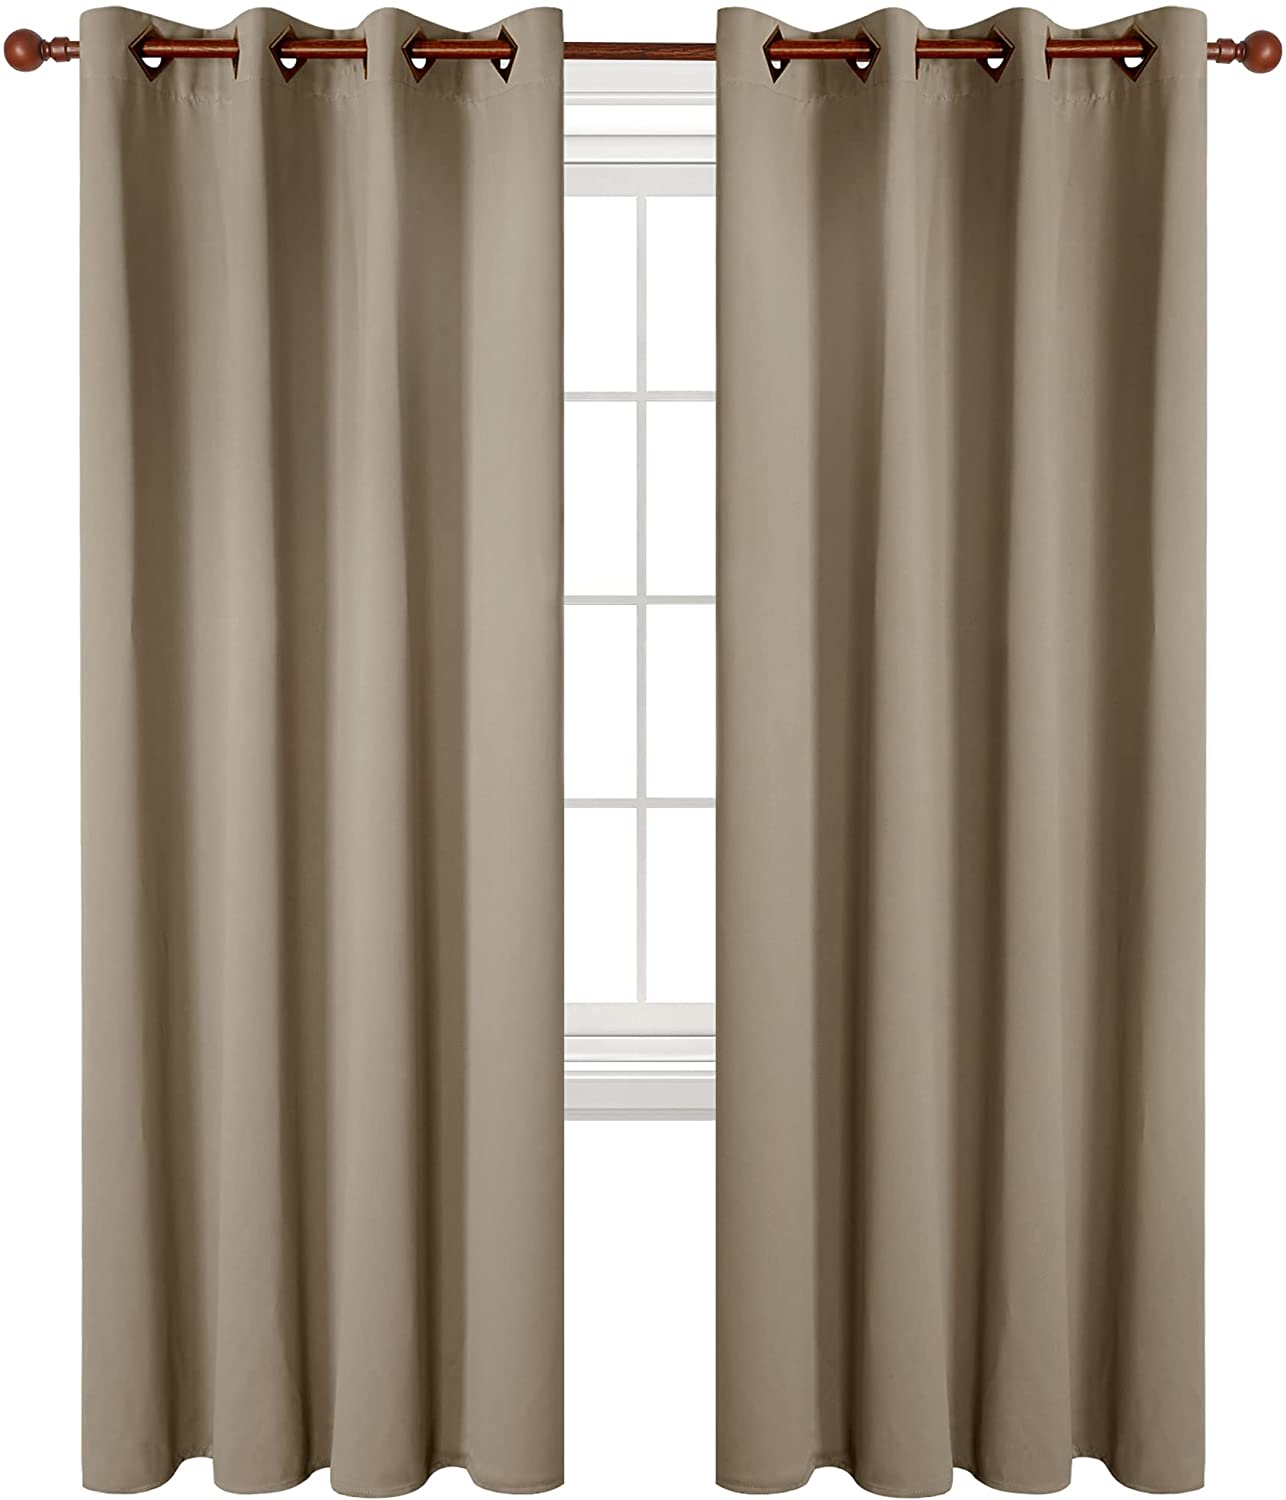 Deconovo Grommet Top Blackout Curtains Insulated Room Thermal Da Max 84% Regular store OFF